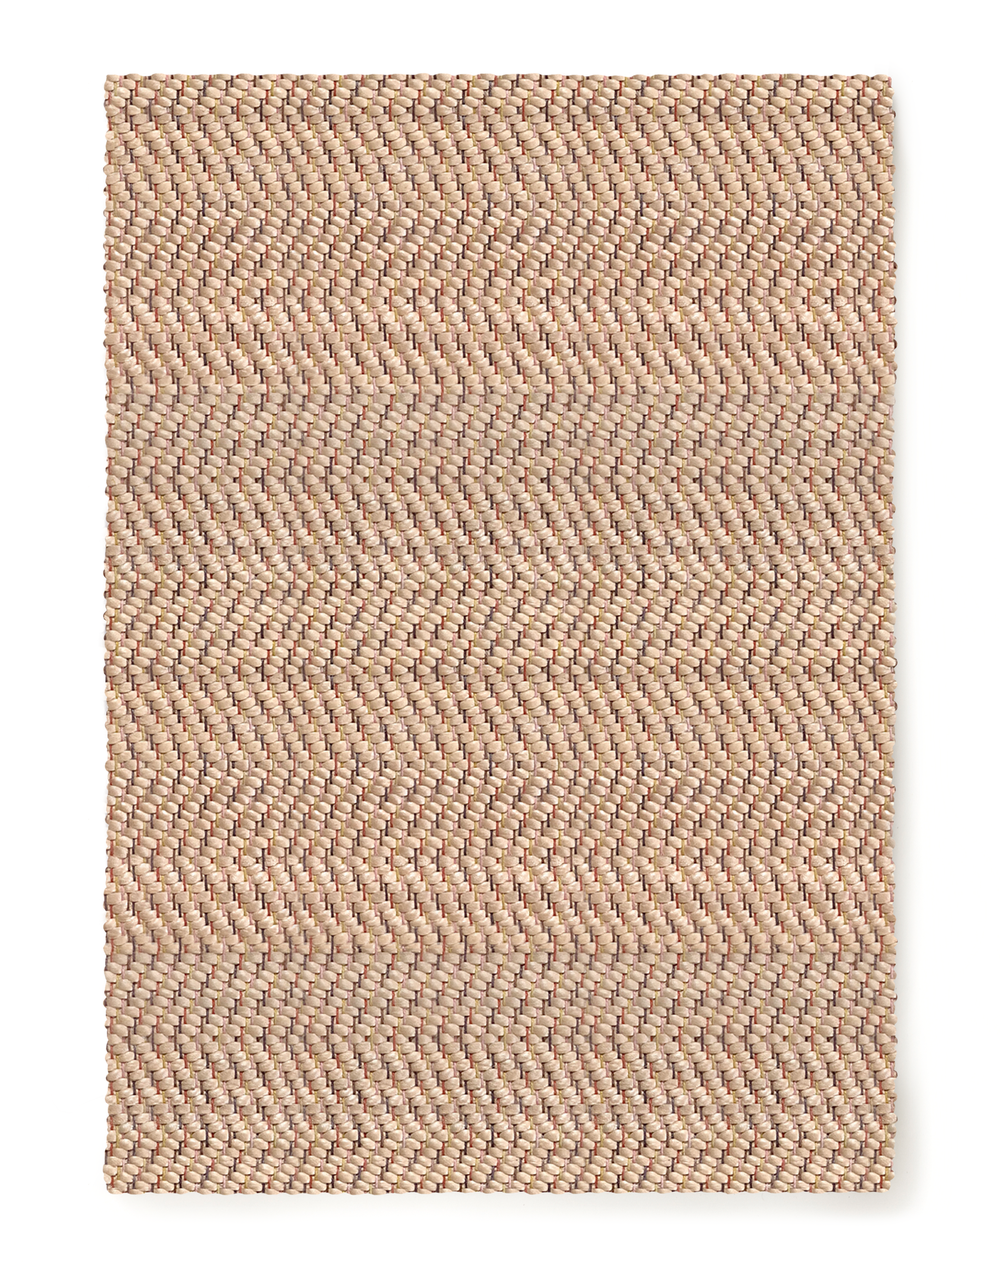 AVO_Woven-Leather-Rug_Selvage-Edge_Prism.png